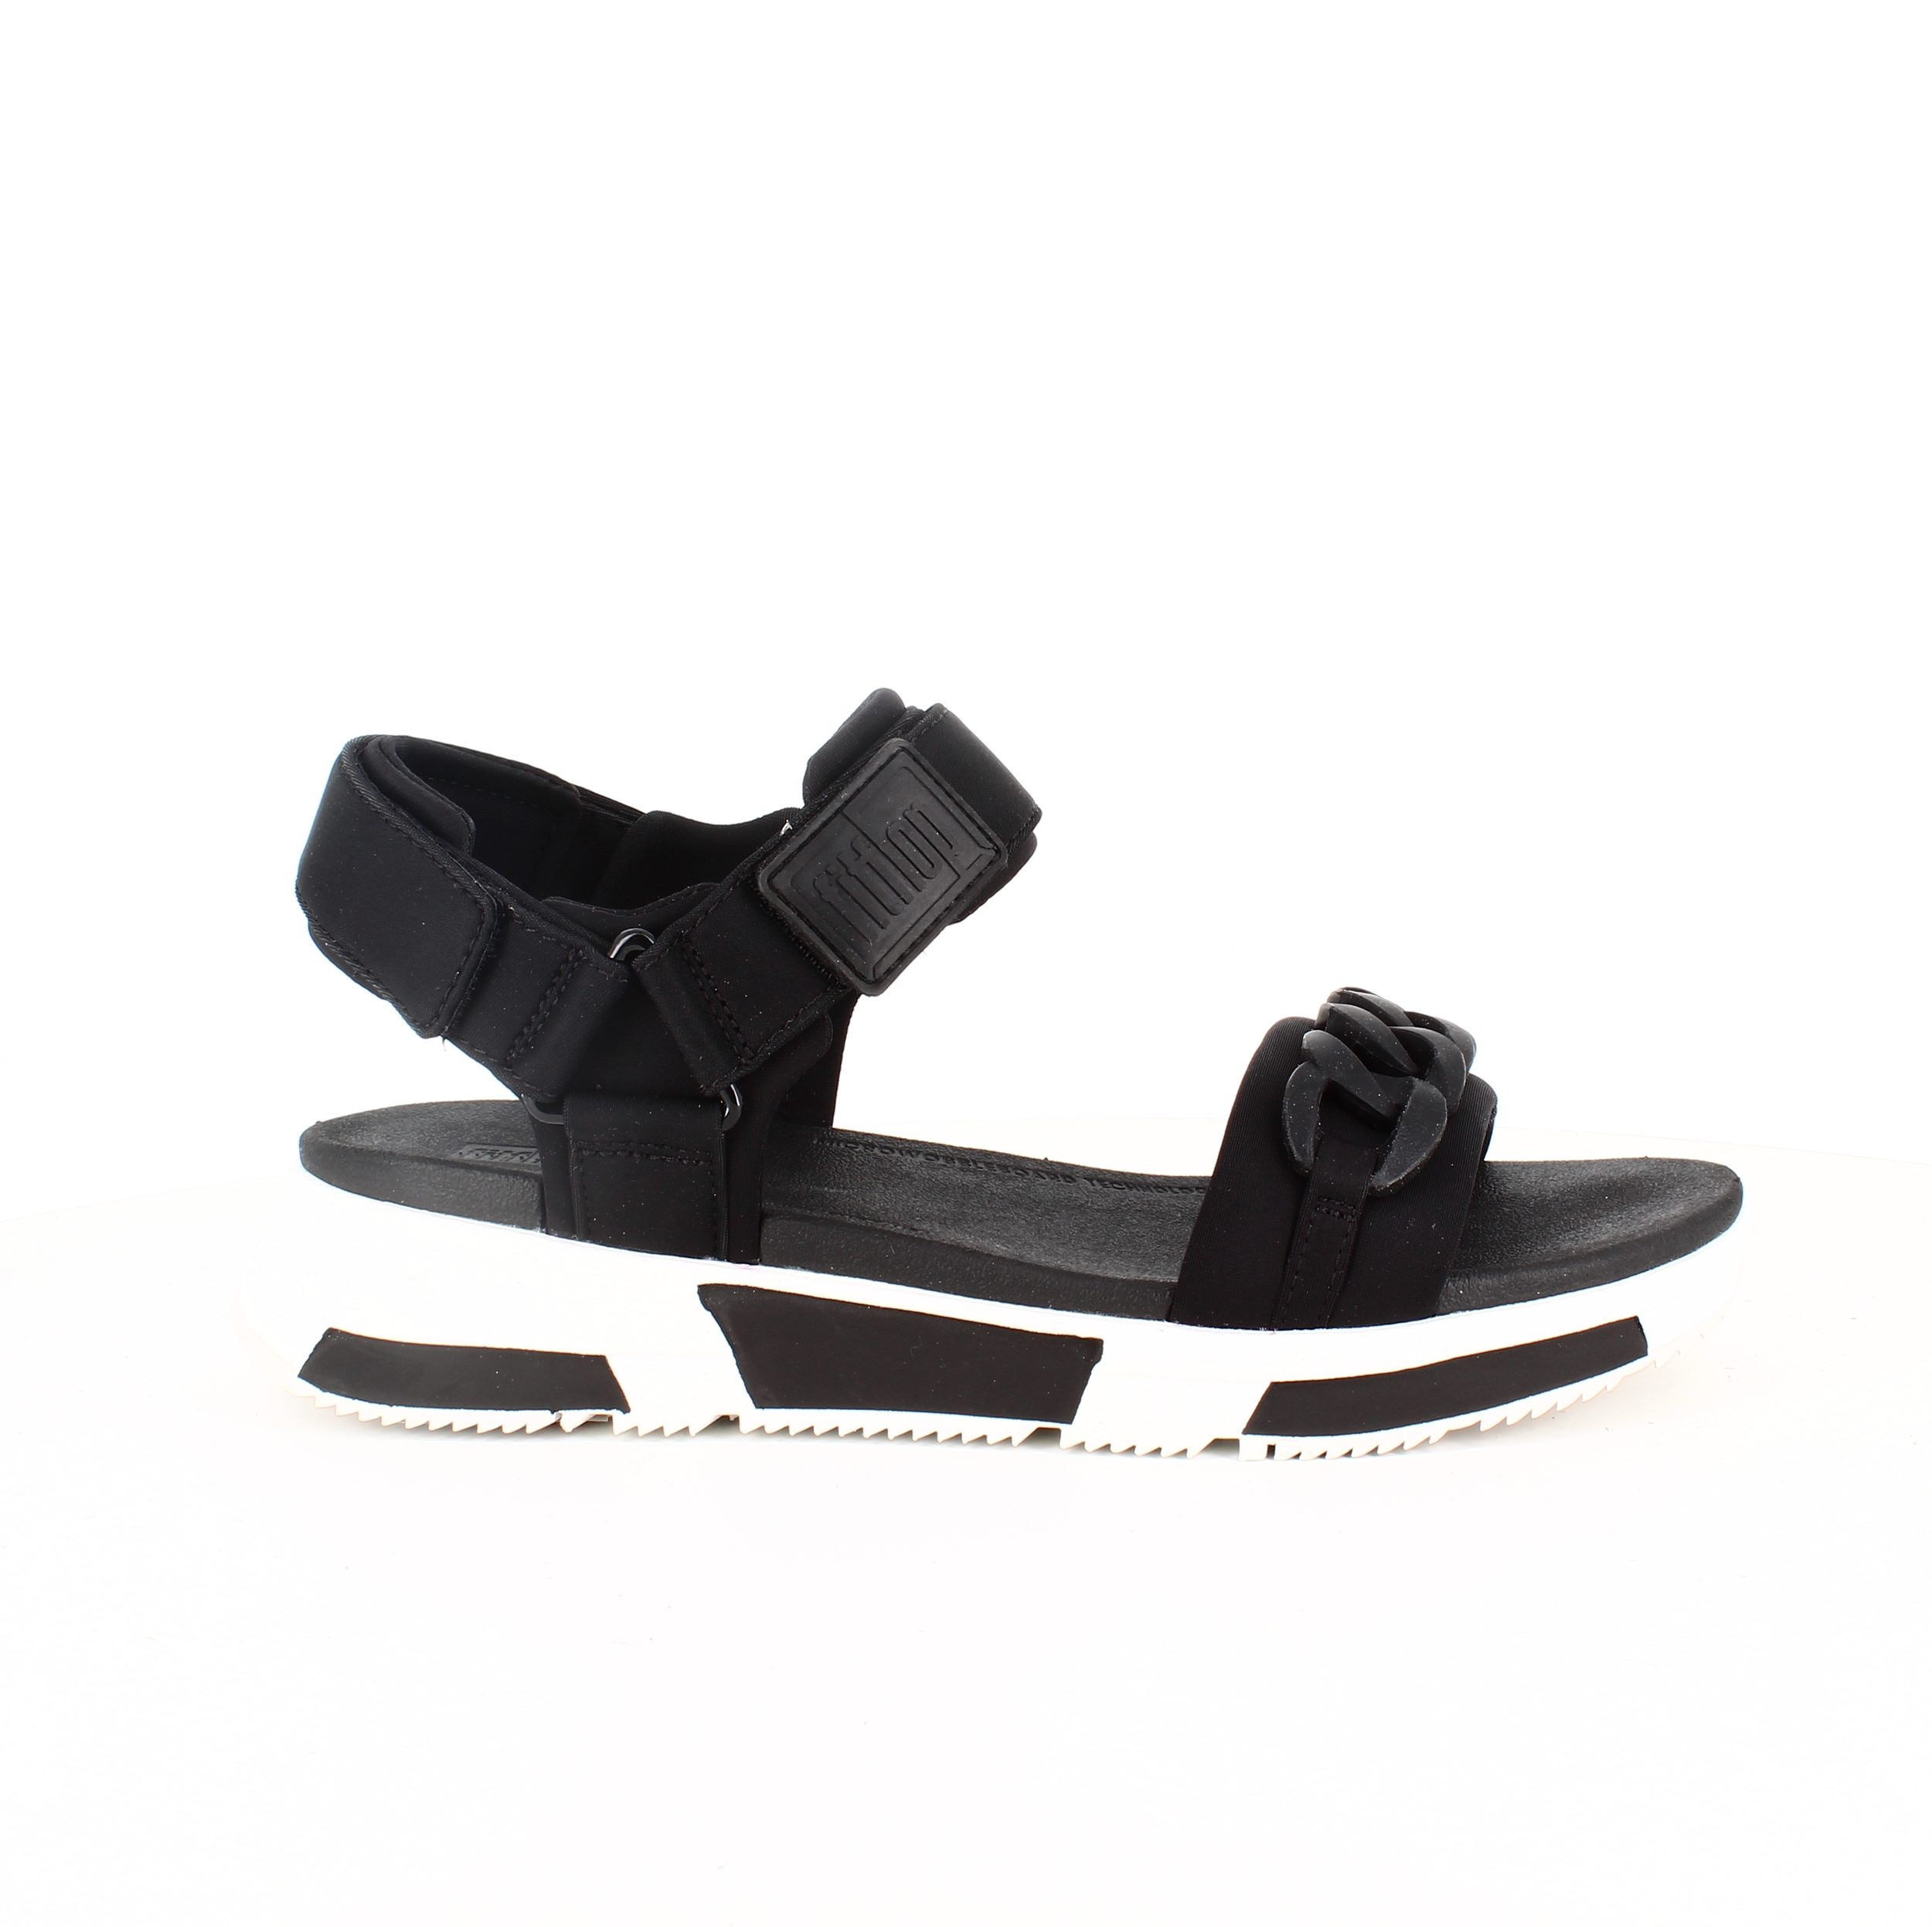 Image of   Heda Back strap sandal fra Fit flop - 37